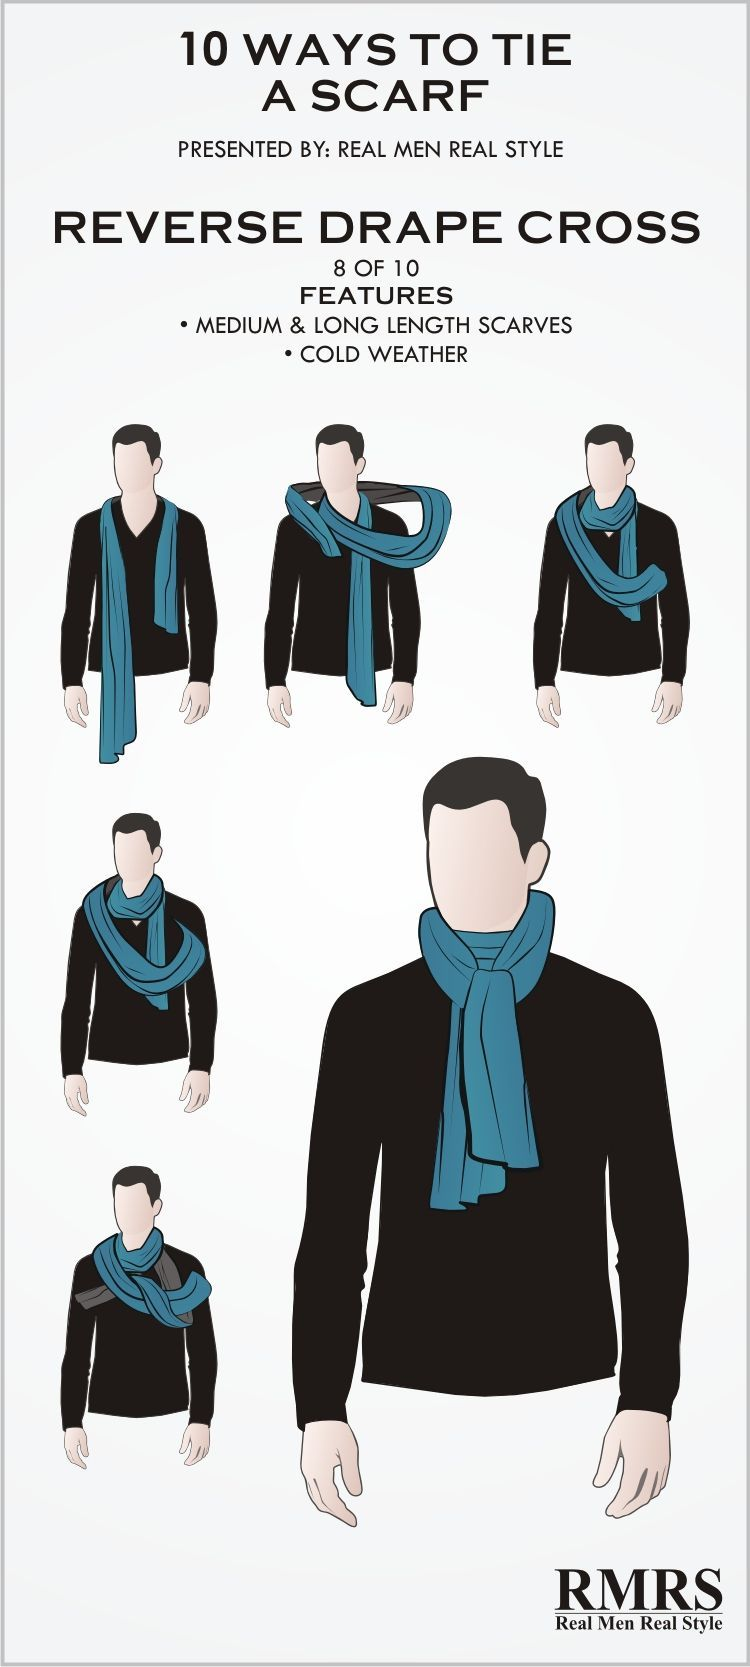 Scarves are a womanus accessory